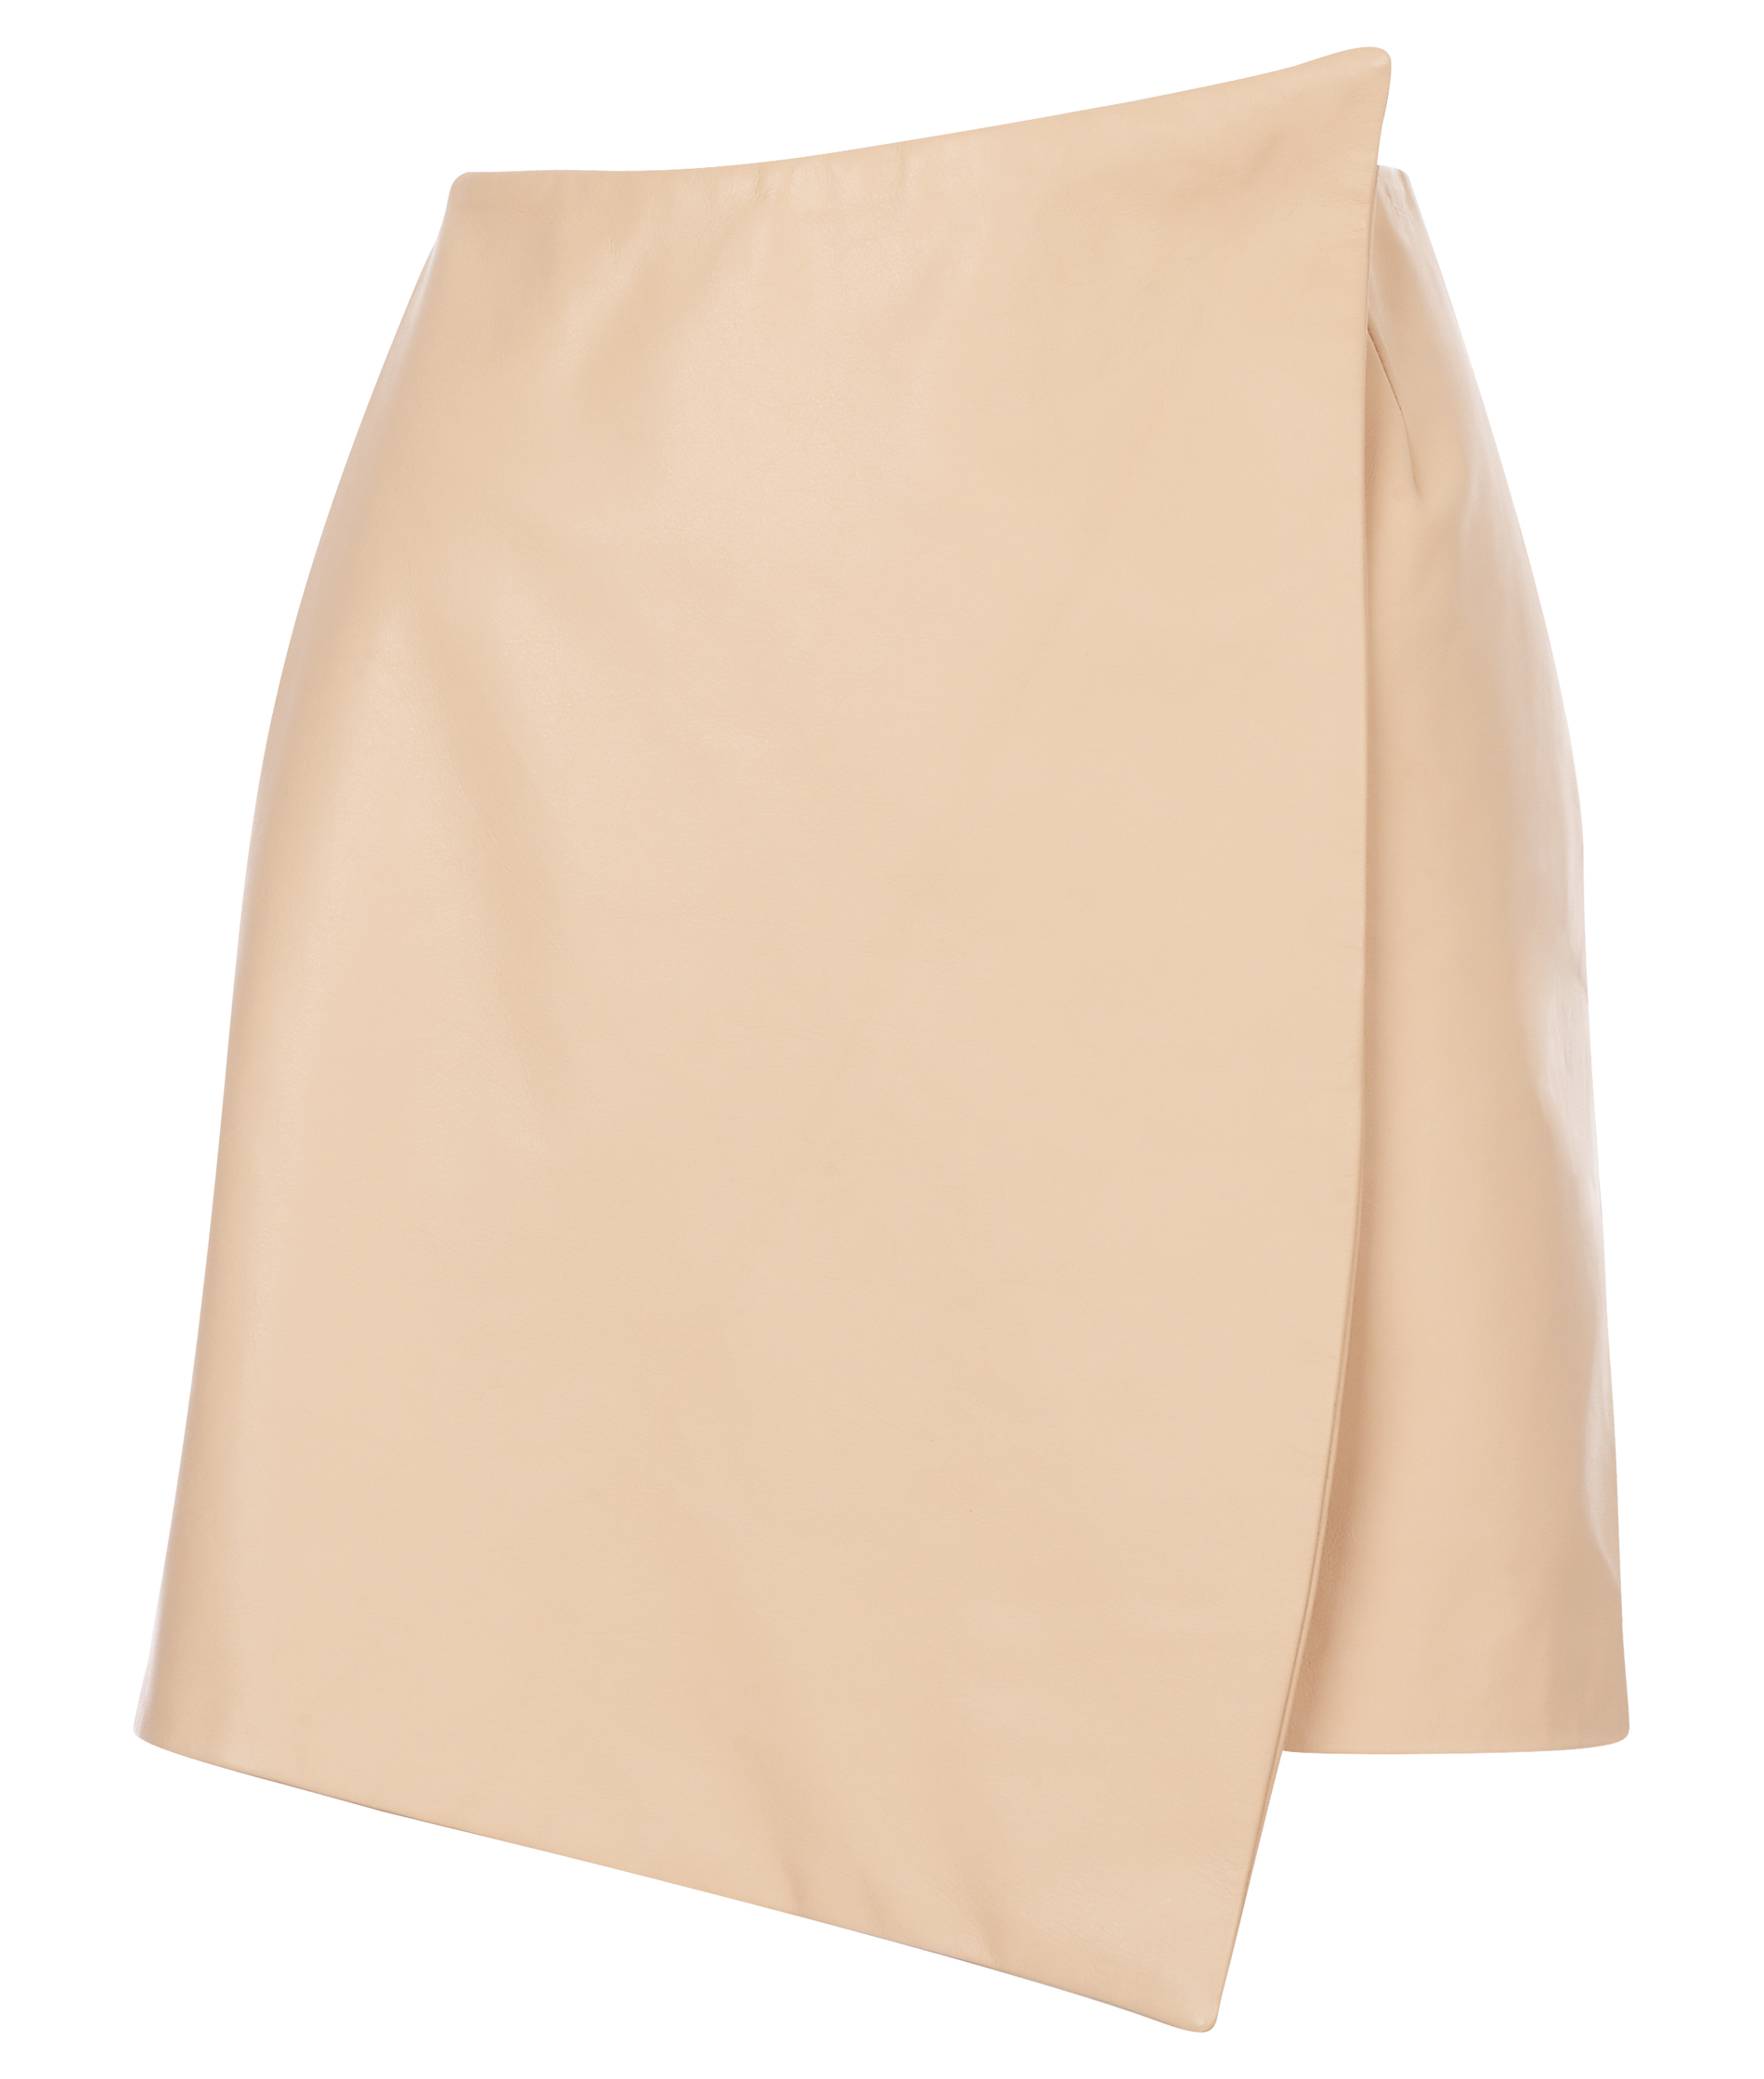 THE LEATHER ENVELOPE SKIRT - Girl a la Mode